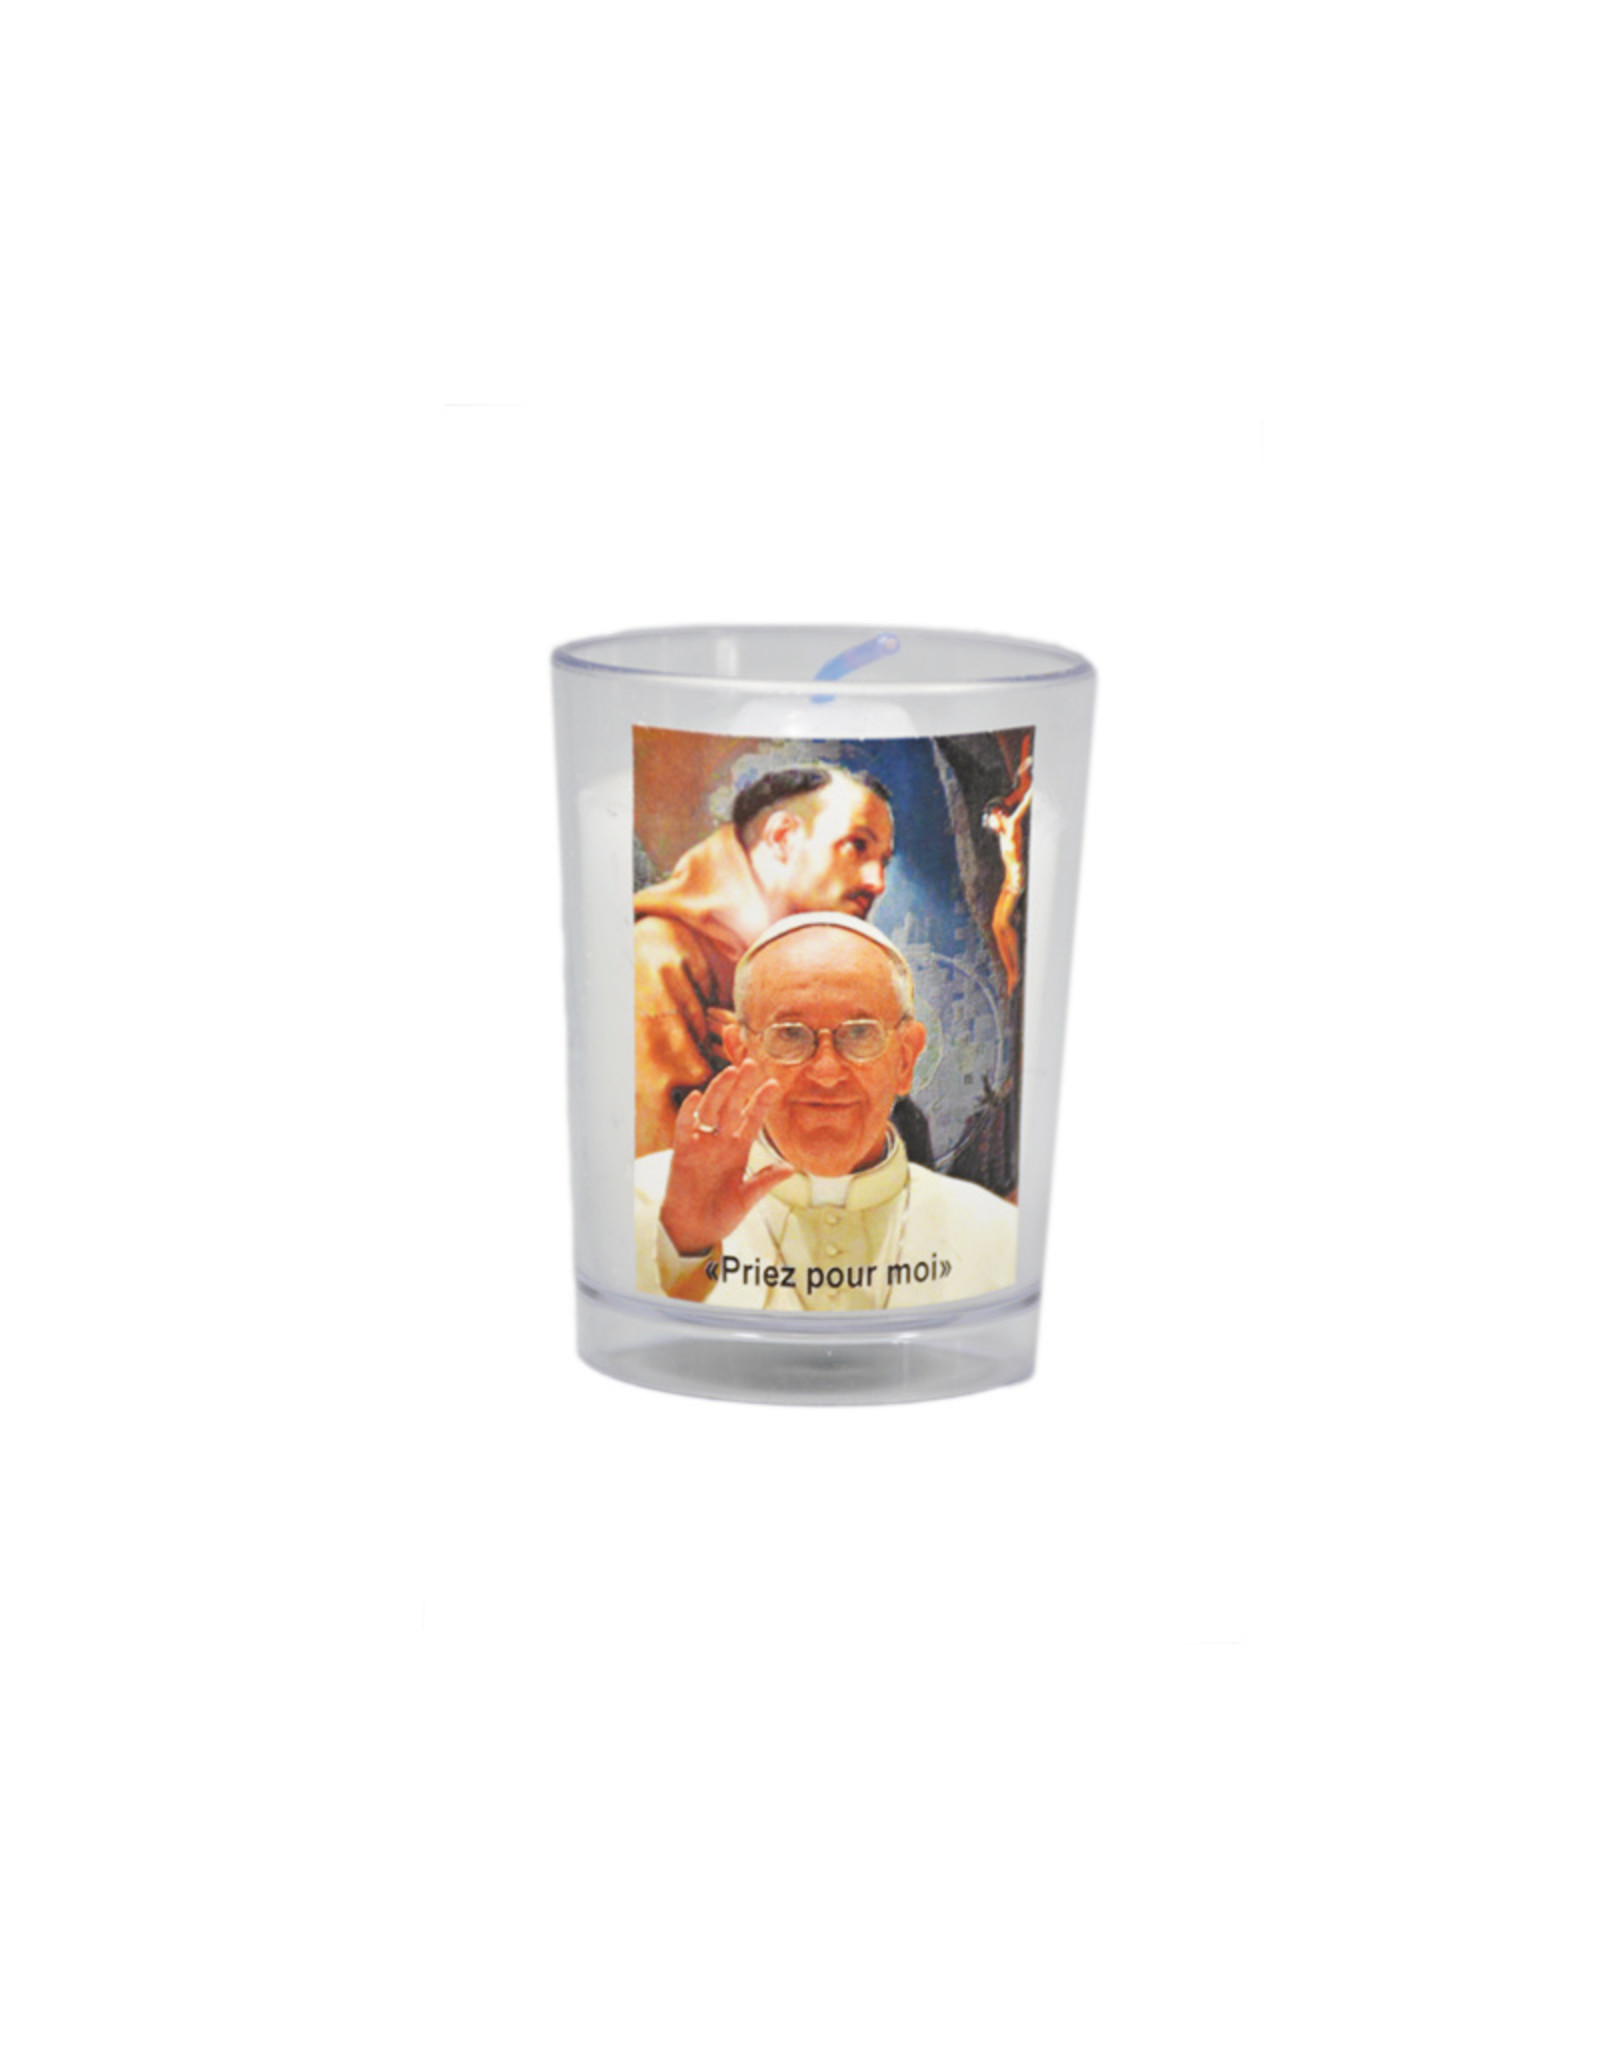 Chandelles Tradition / Tradition Candles Lampion Pape Francois